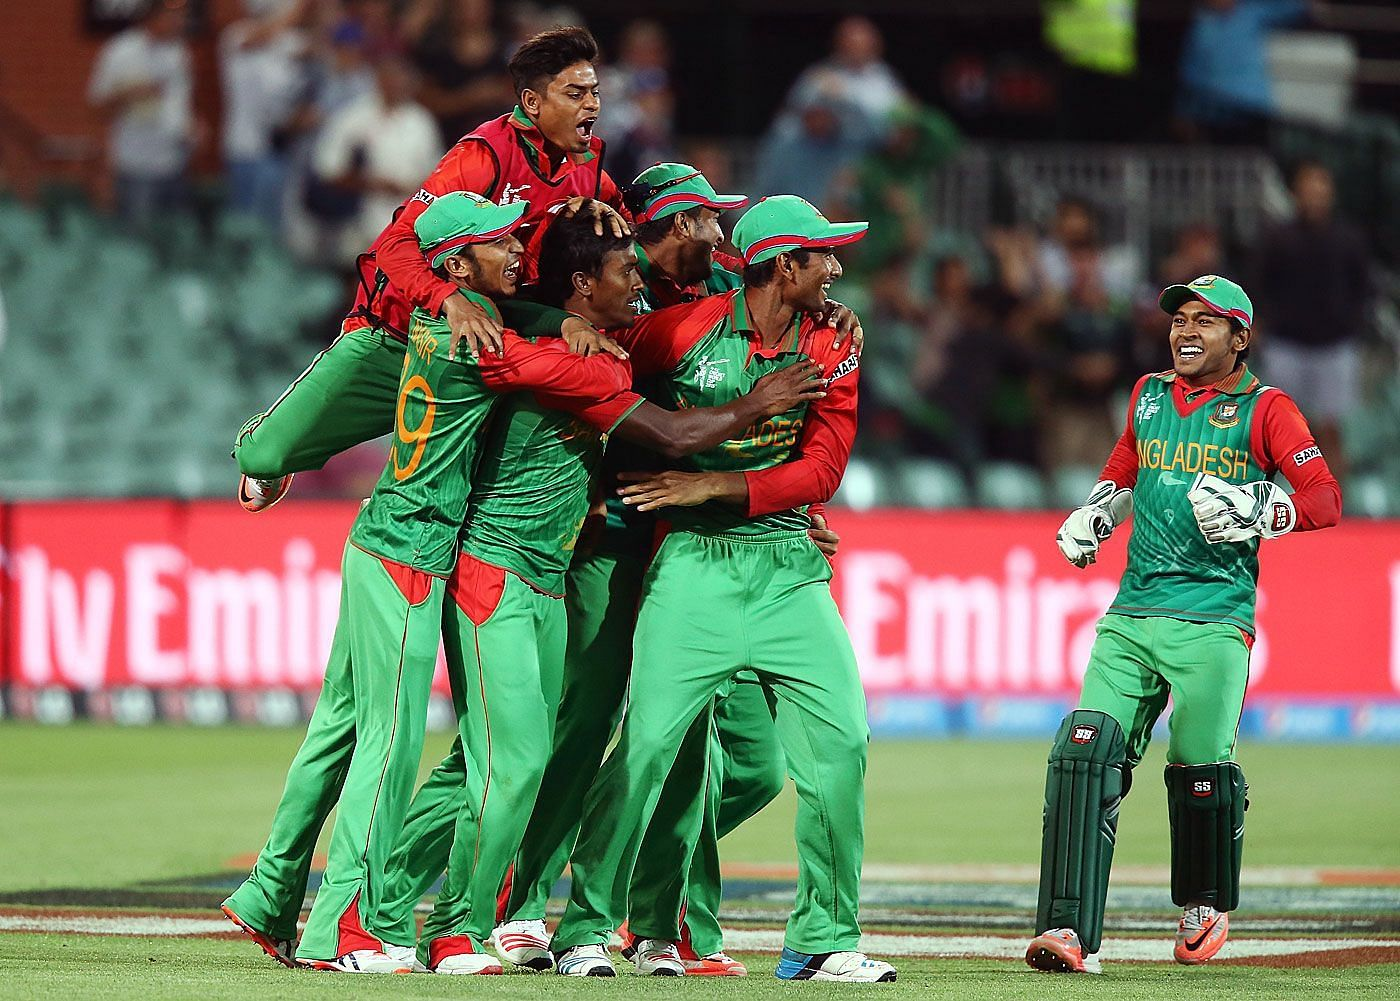 BAN vs IRE Dream11 Prediction: Fantasy Cricket Tips, Today's Playing 11 and Pitch Report